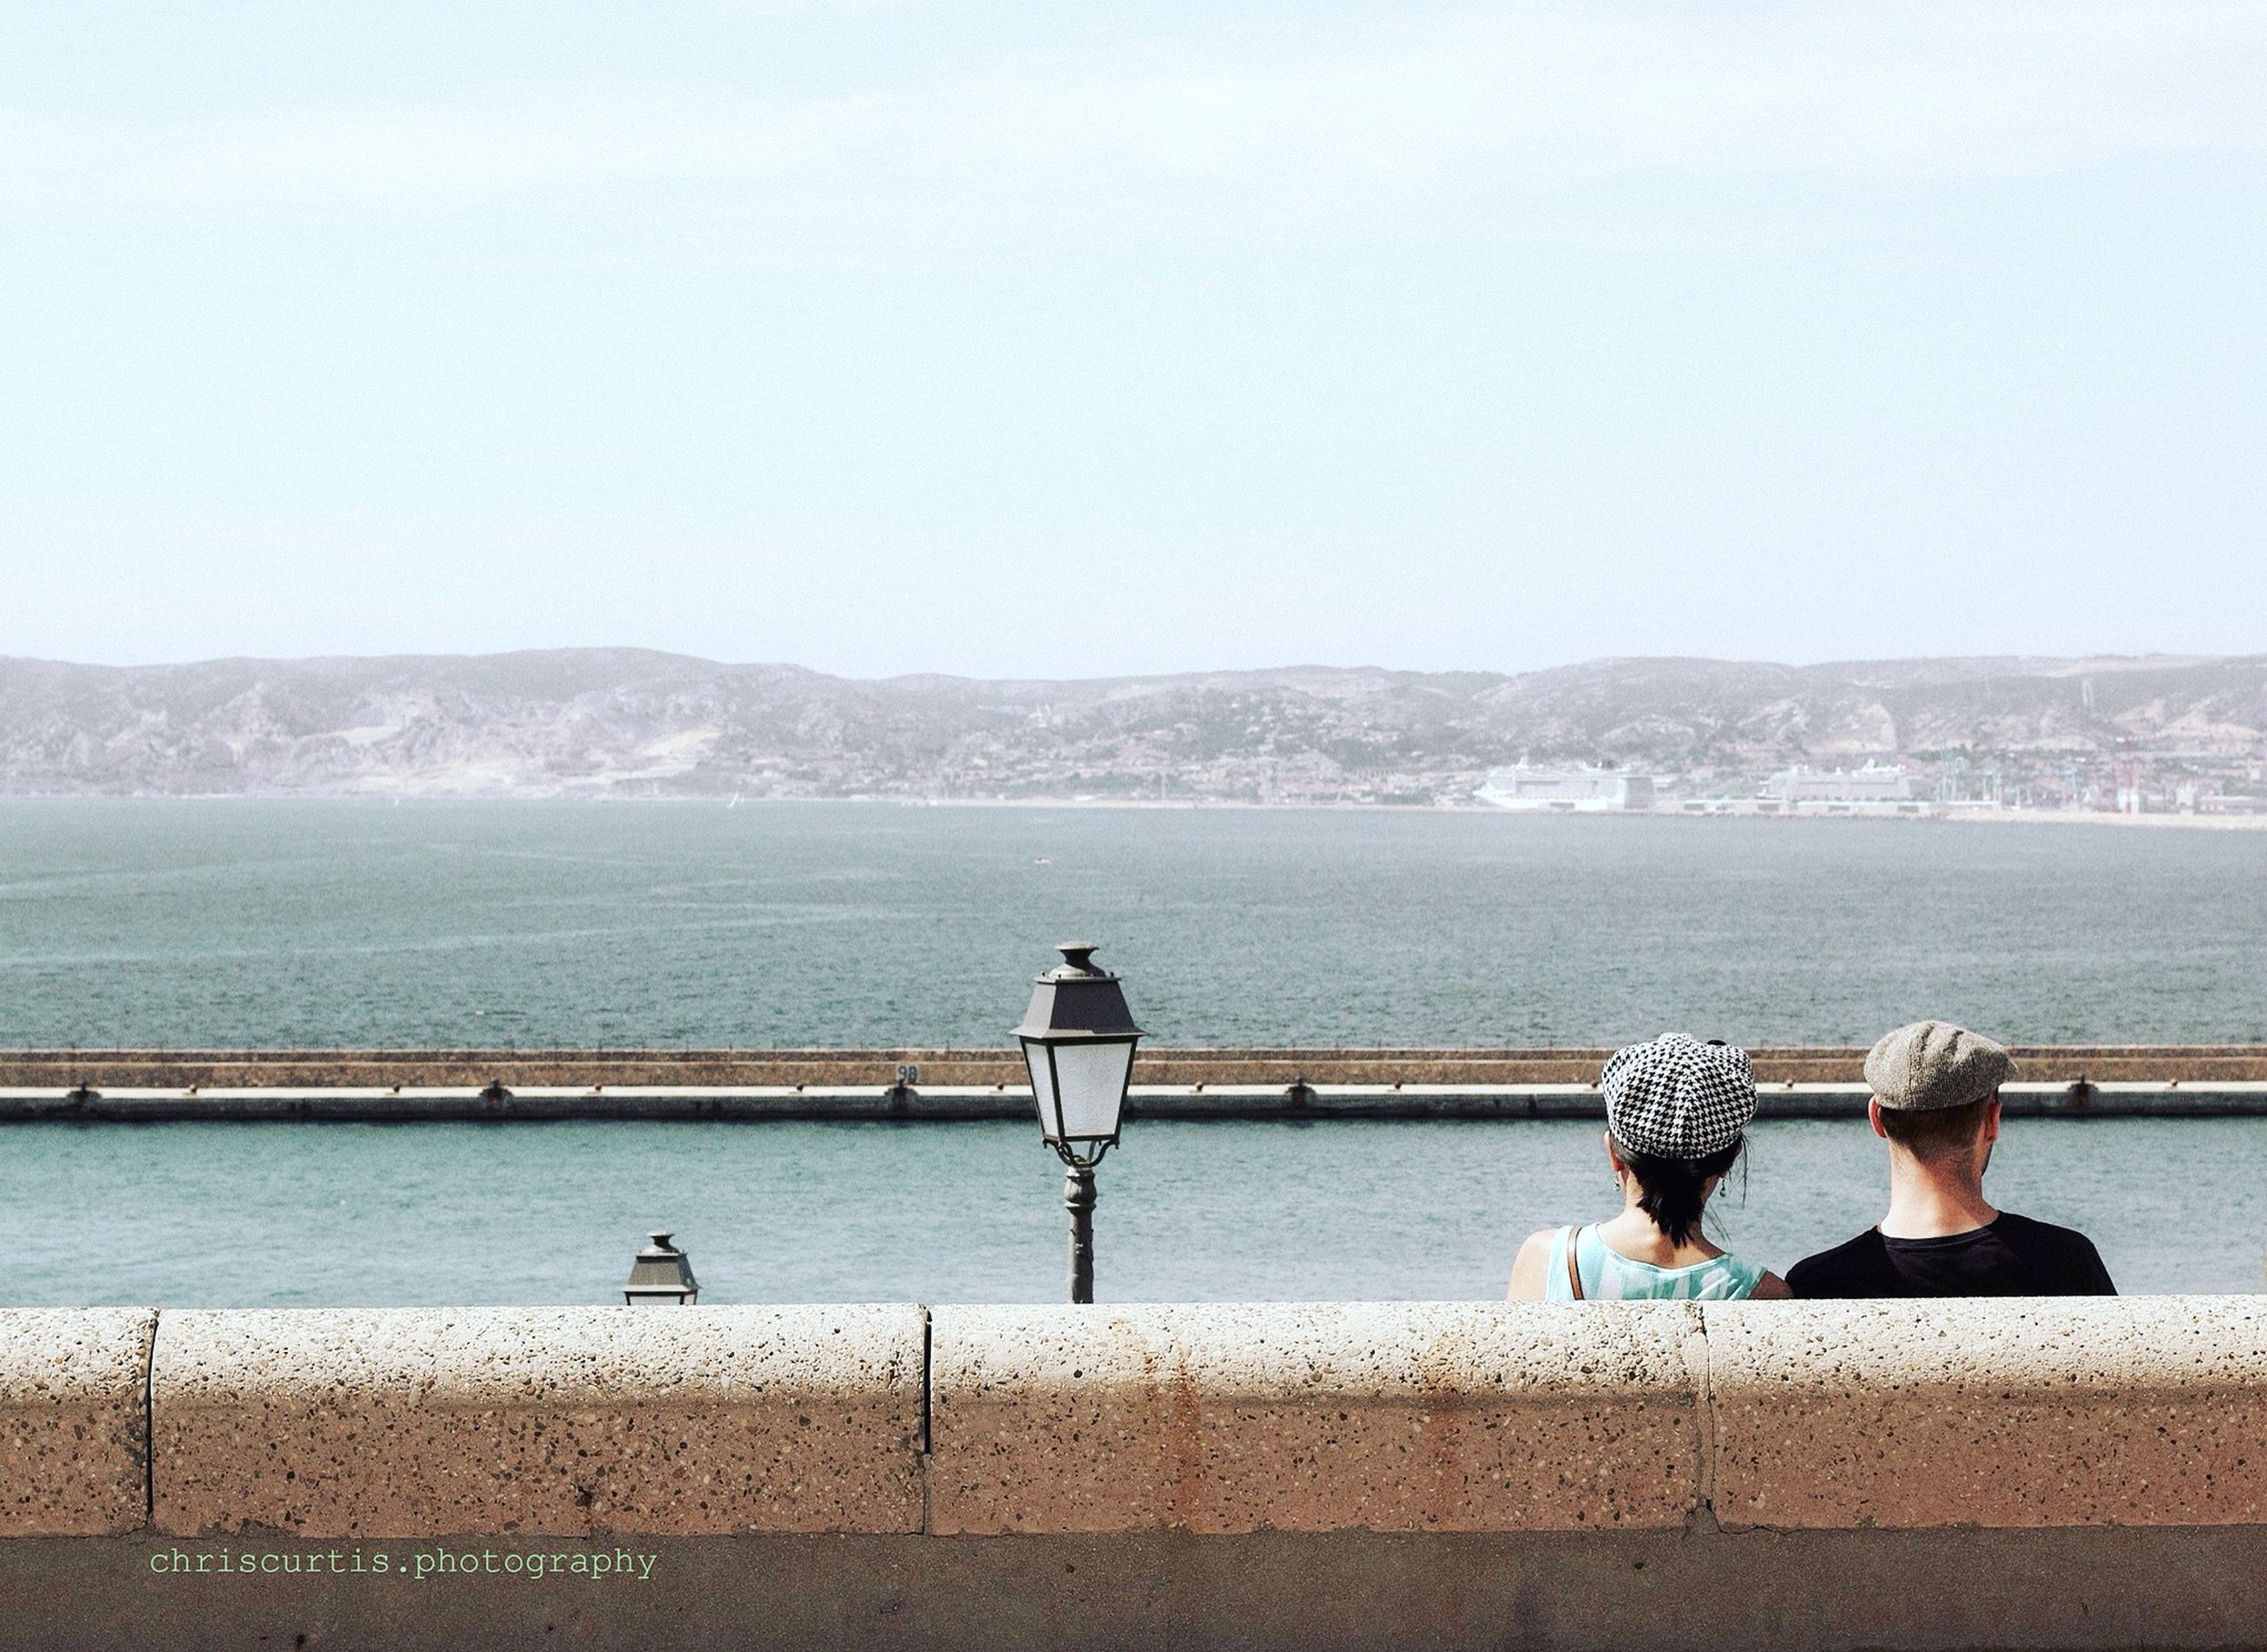 REAR VIEW OF PEOPLE STANDING ON RAILING AGAINST SEA